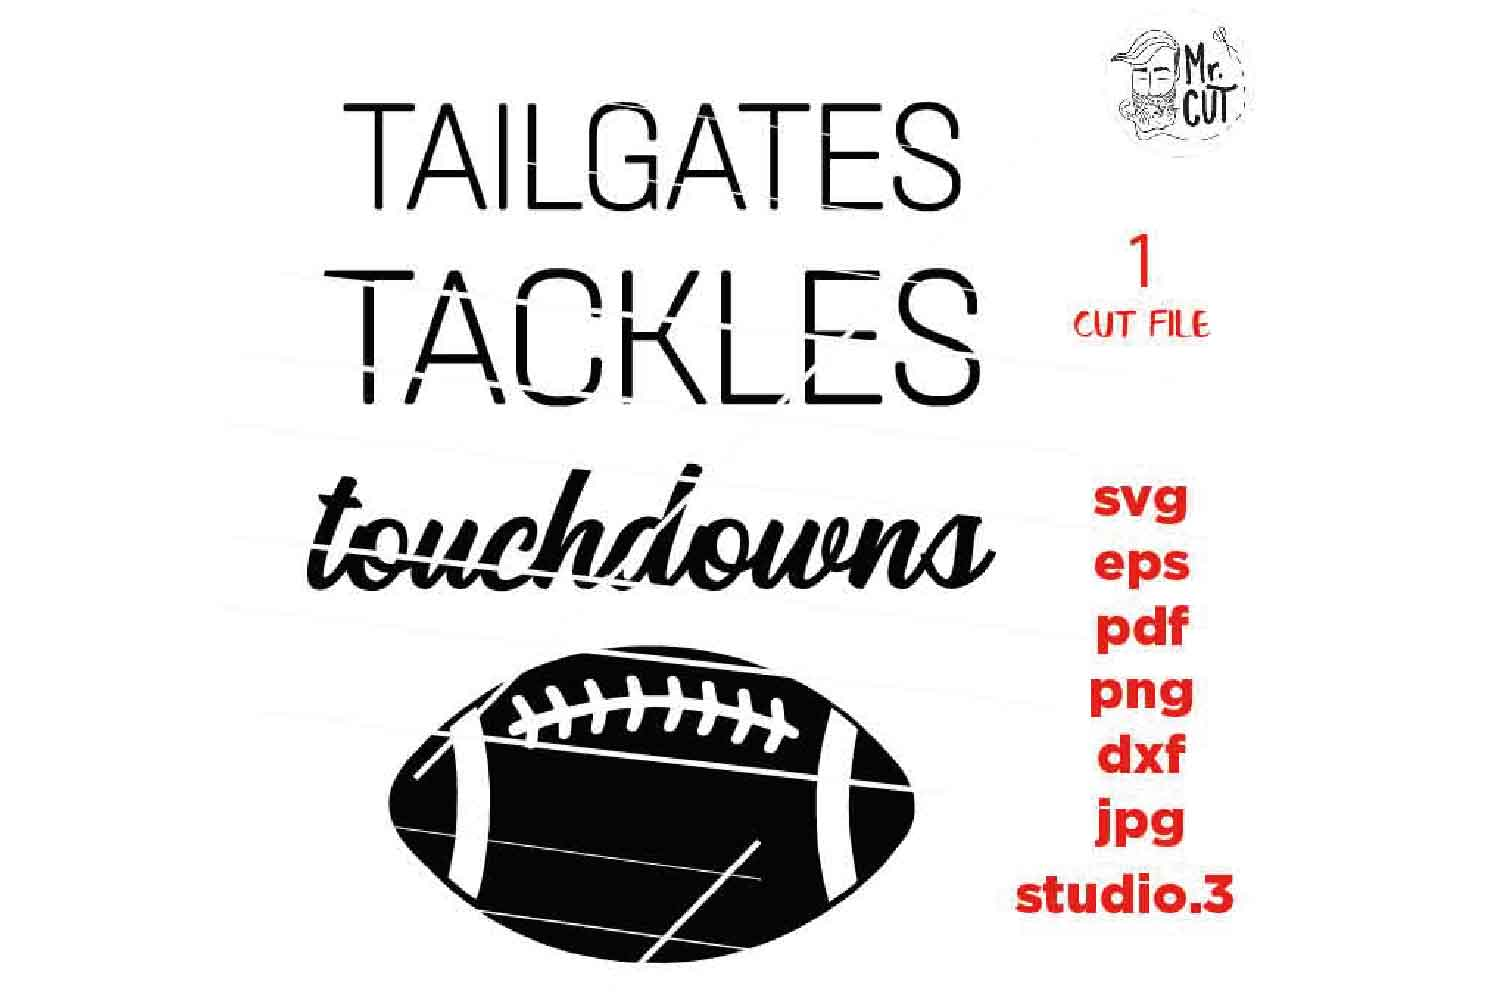 Tailgates Tackles Touchdowns svg , sports SVG, PNG, Dxf, eps example image 3